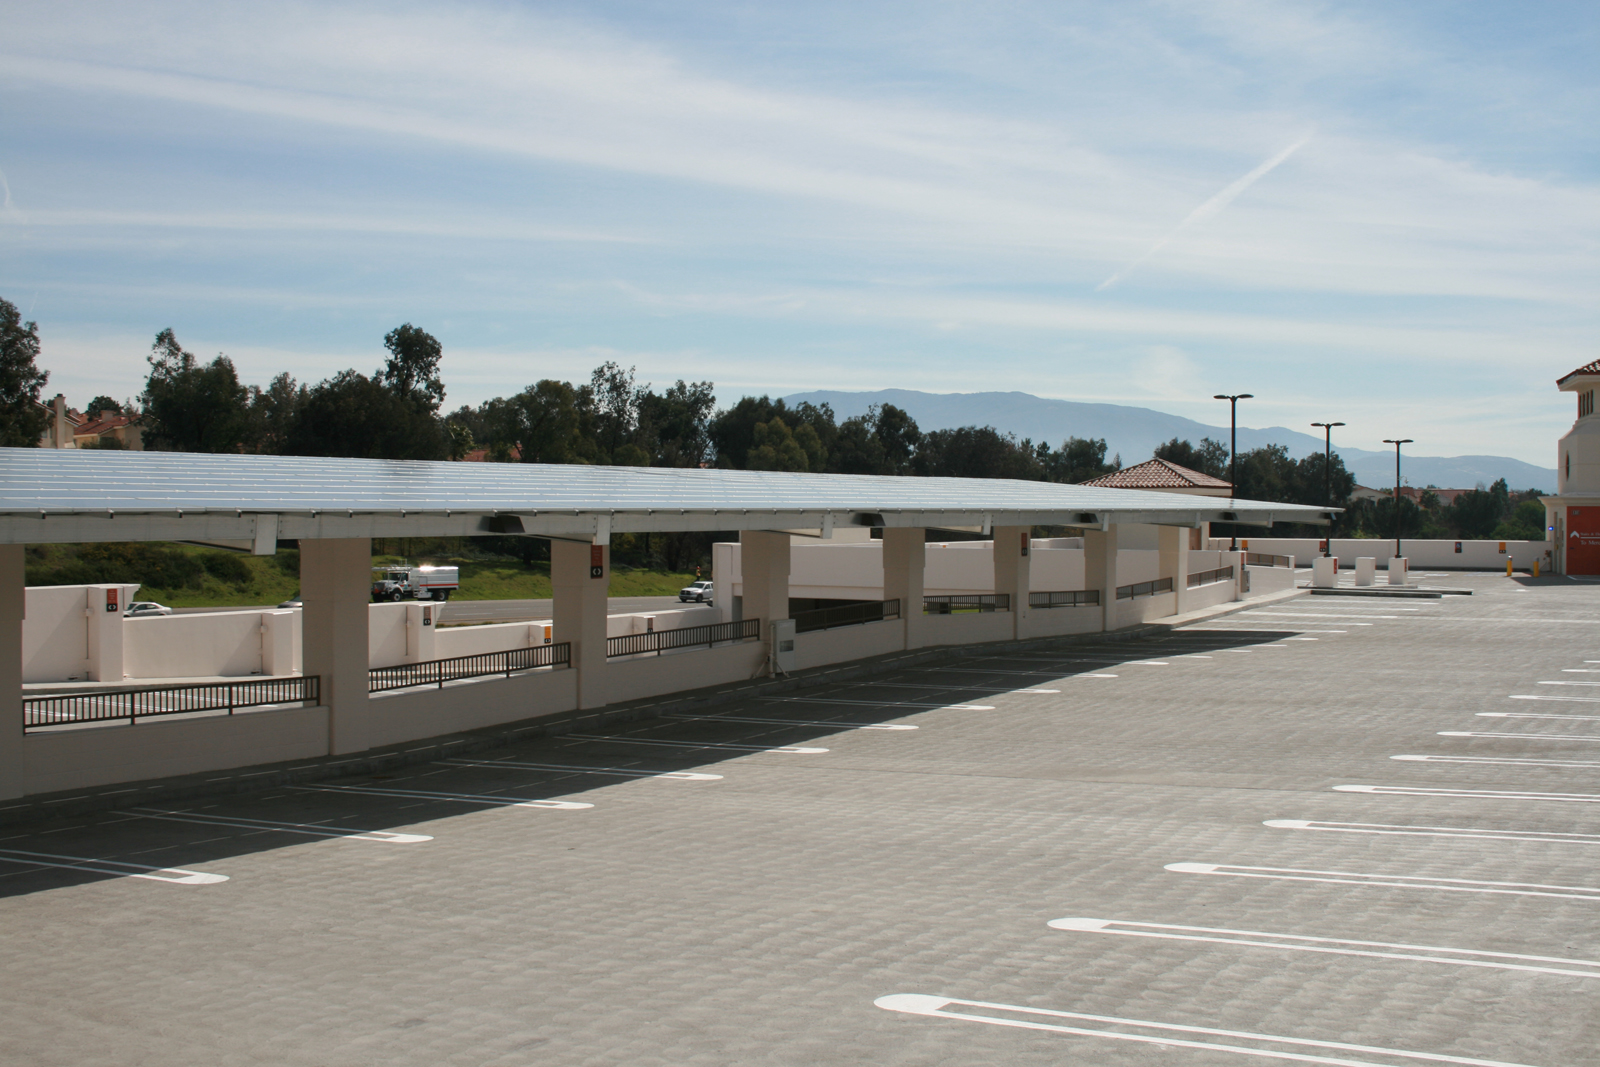 Old Town Garage Solar Carport, Temecula, CA, solar, photovoltaic, carport, structural engineering services